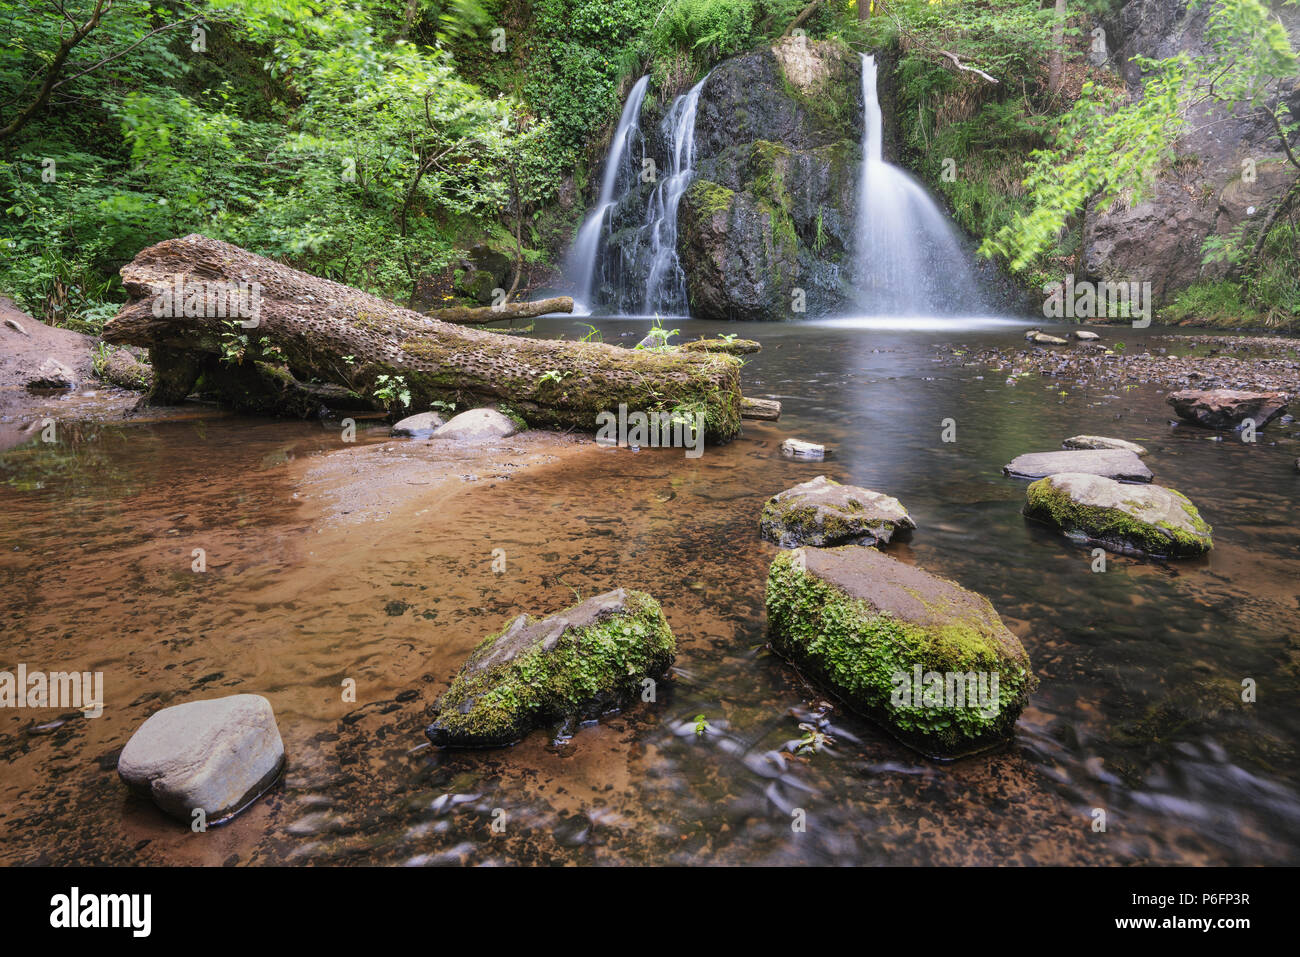 Fairy glen falls at Rosemarkie in Scotland along the North coast 500 route - Stock Image